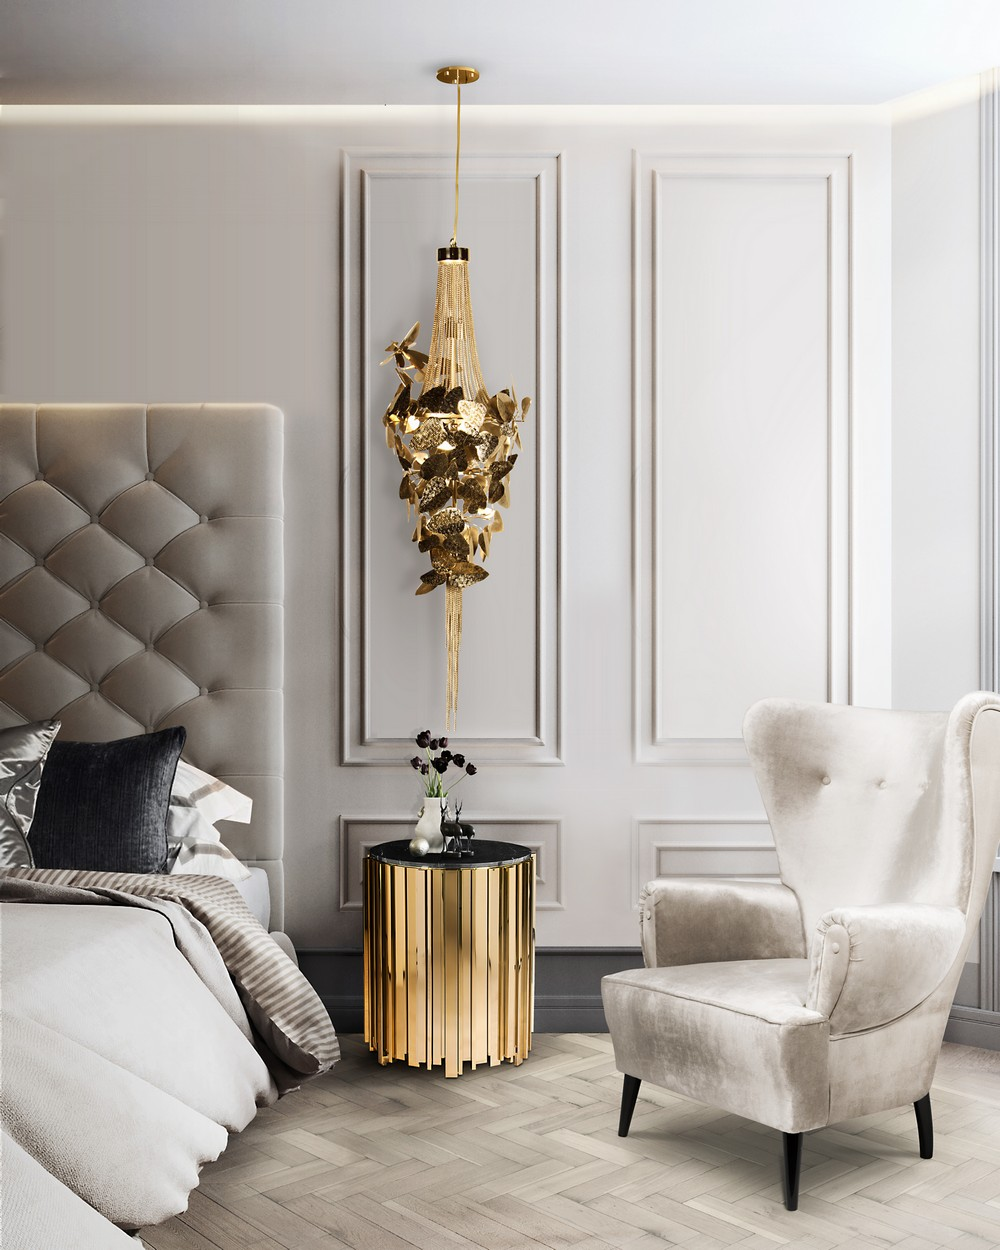 Interior Design Trends that Will Never Go Out of Style_7 interior design trends Interior Design Trends that Will Never Go Out of Style Interior Design Trends that Will Never Go Out of Style 7